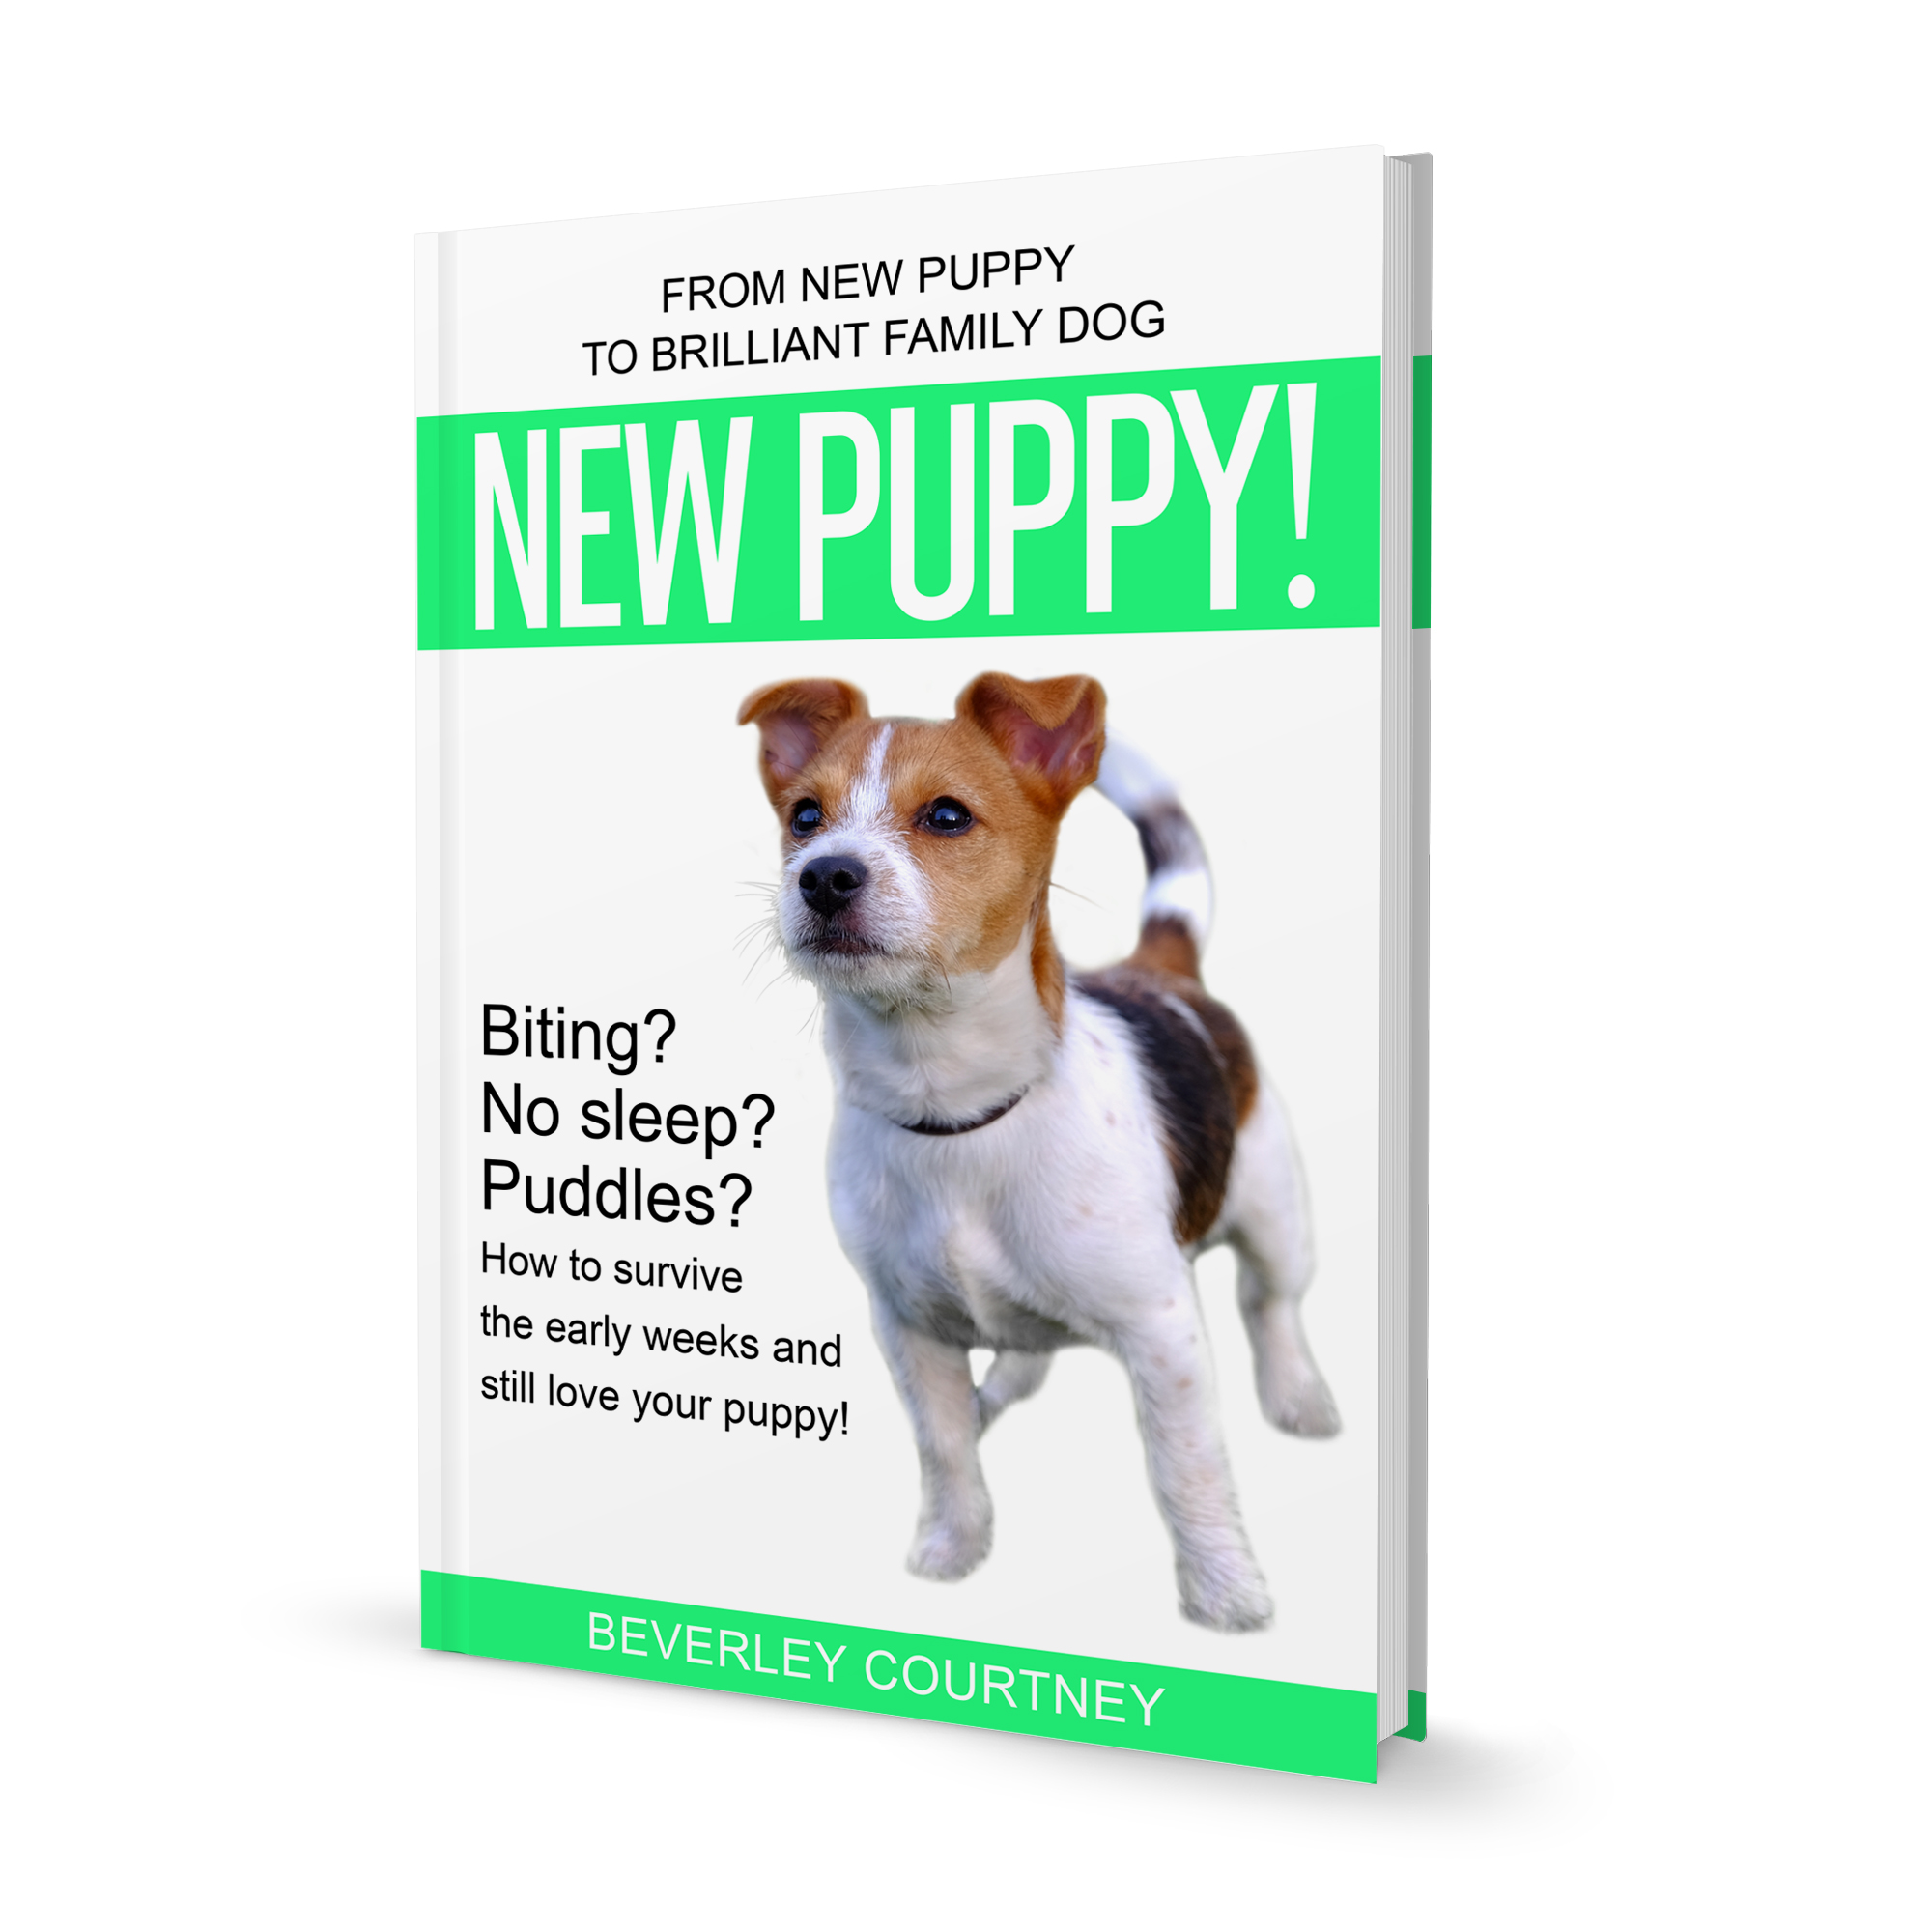 Got a new puppy! Wonderful! Now find out how to make your pup the best ever with this post. Lots of resources and a great book to get you started fast | FREE GUIDE | #newpuppy, #dogtraining, #puppyandolderdog, #puppytraining, #puppycare, #dogbehavior | www.brilliantfamilydog.com